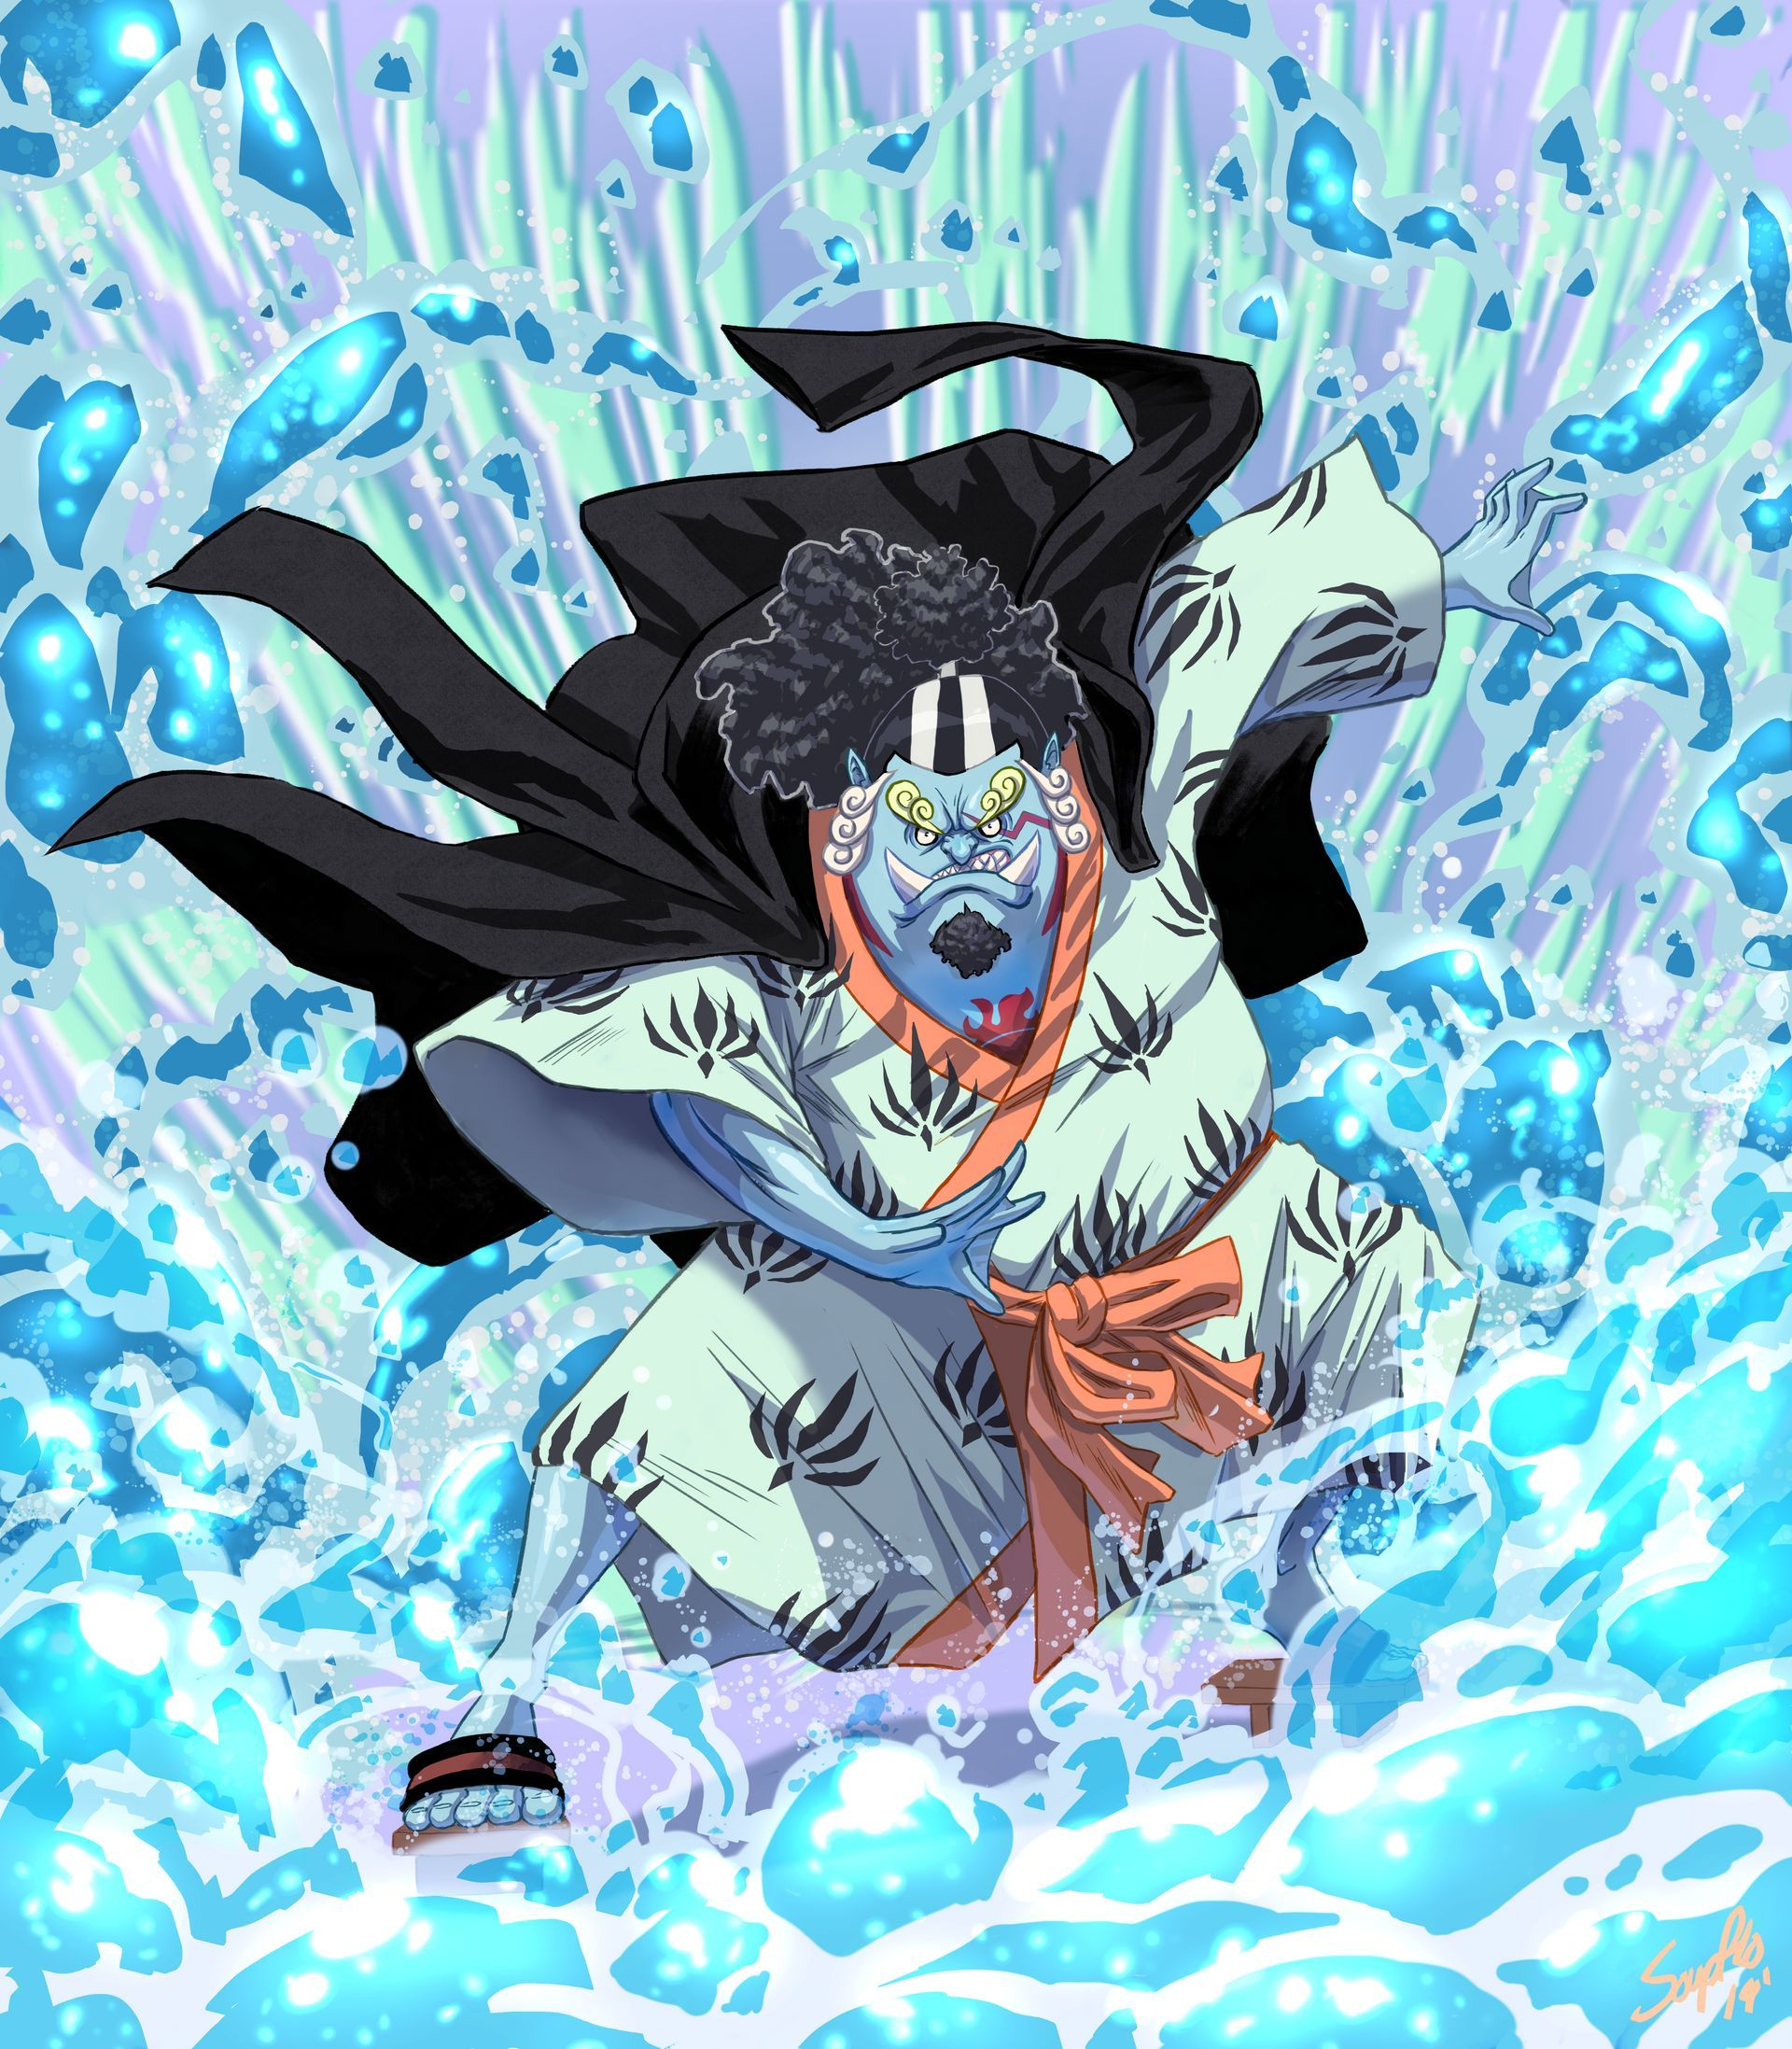 First Son Of The Sea Jimbei By Jrdncmpb11 On Deviantart Pink Wallpaper Anime One Piece Theme Piecings Deviantart iphone wallpaper anime